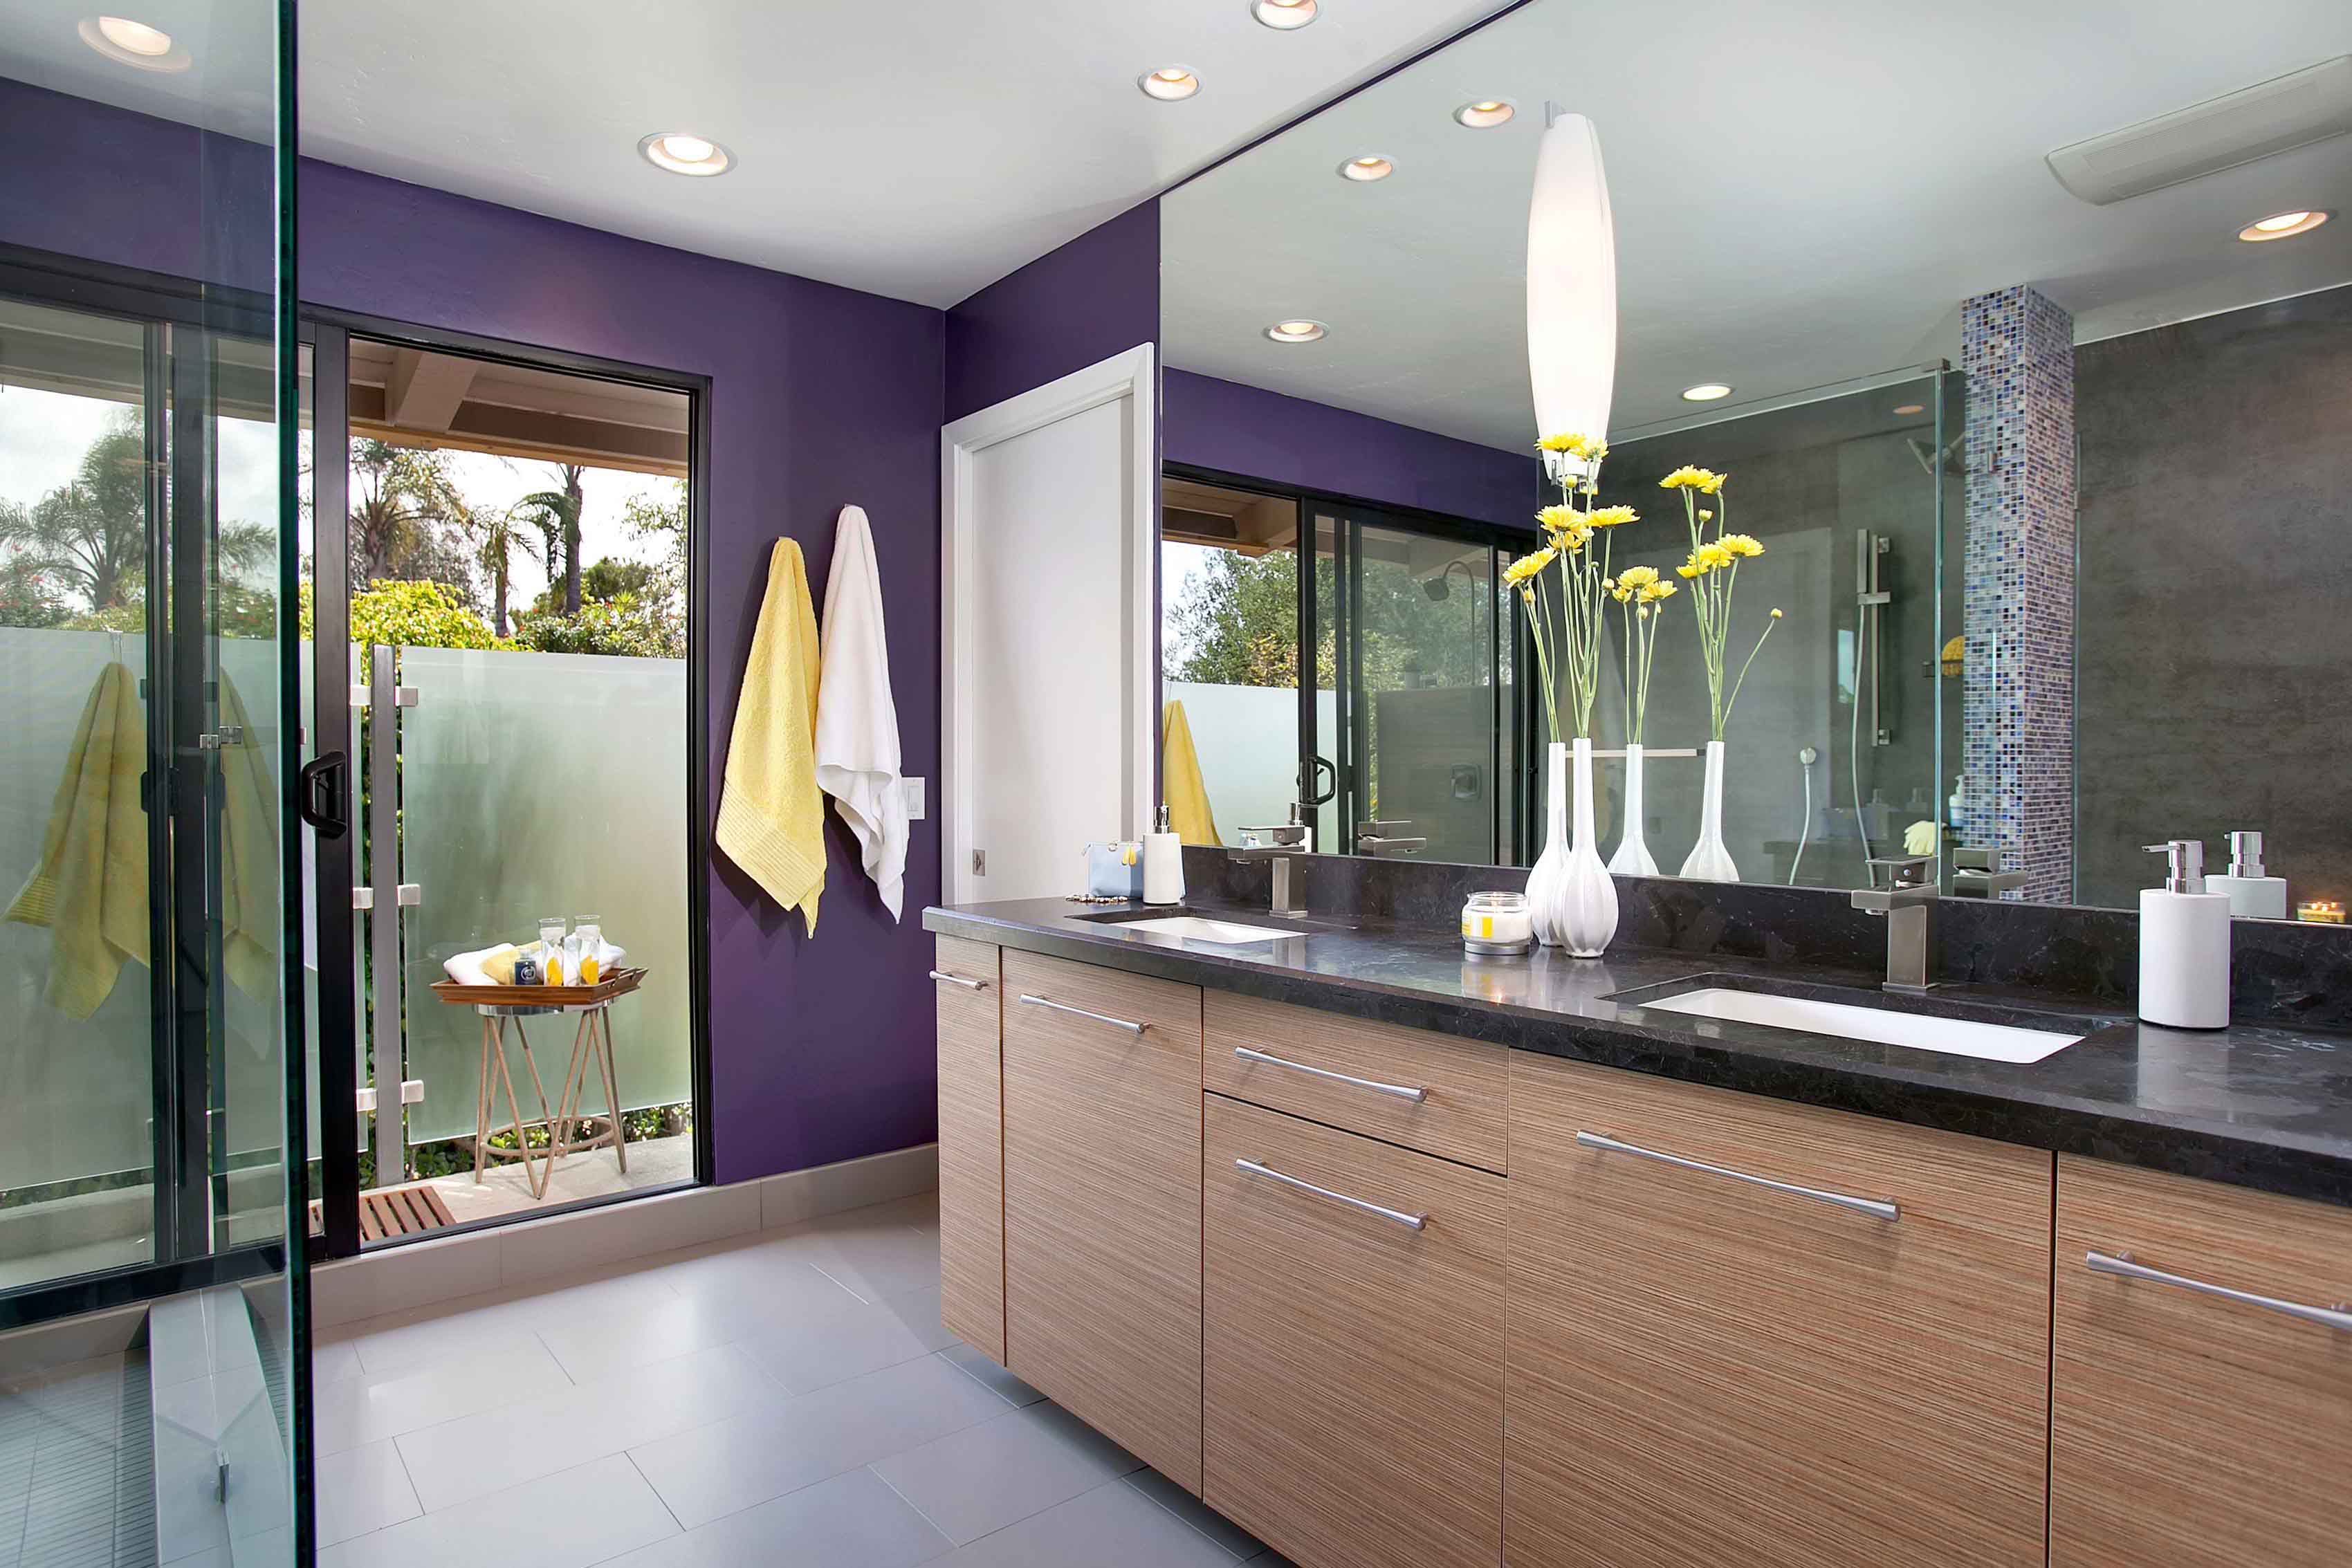 Modern Bathroom Bathroom Repaint And Remodel With Pop Color (Image 4 of 7)